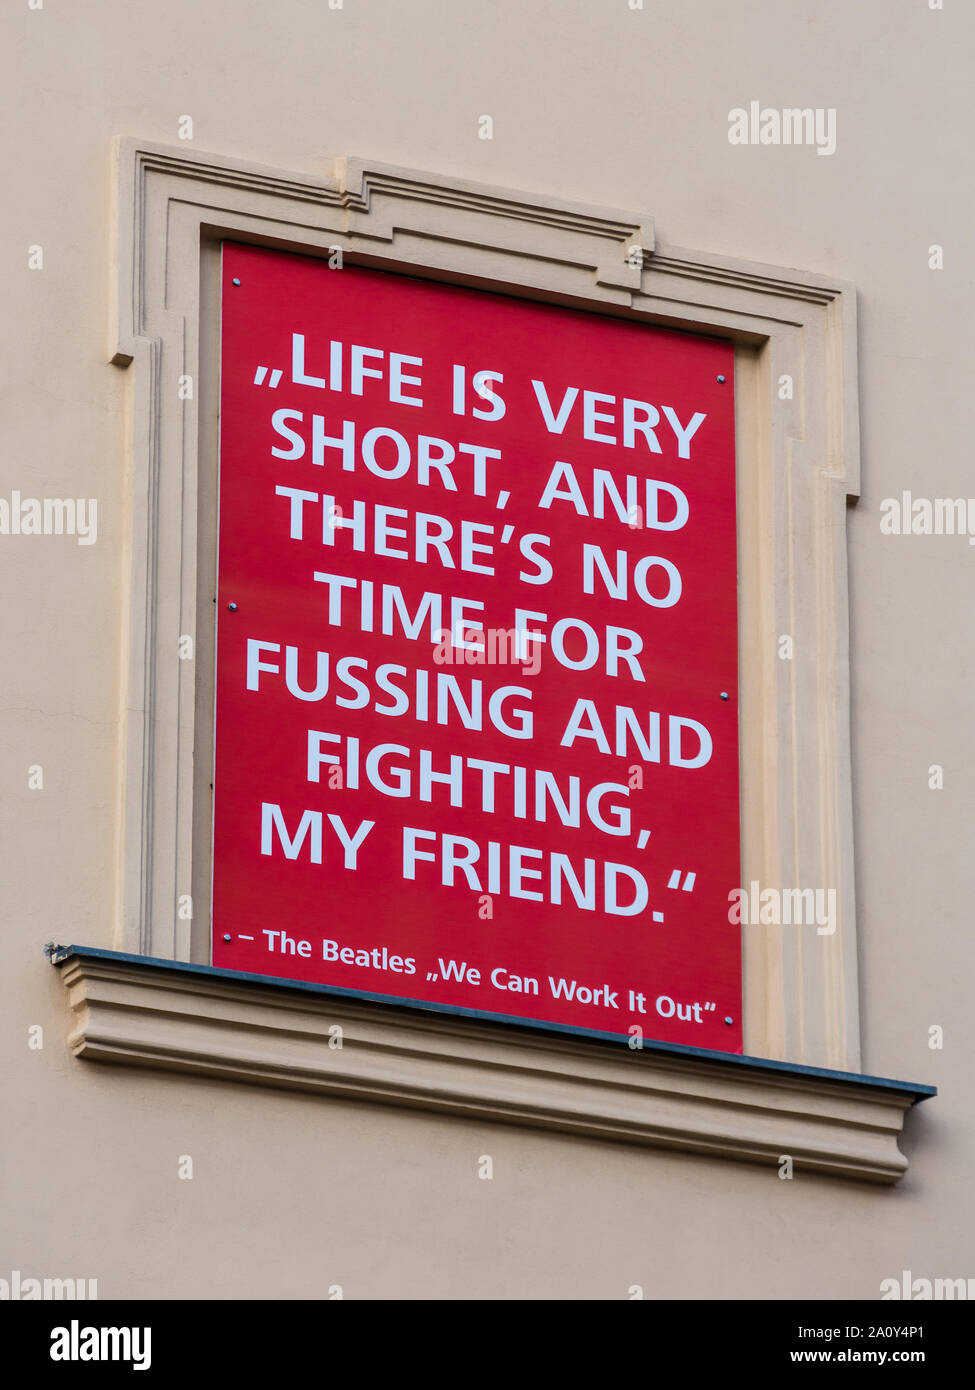 """Beatles """"life is very short..."""" song lyrics on display board in the Museums Quarter of Vienna, Austria. Stock Photo"""